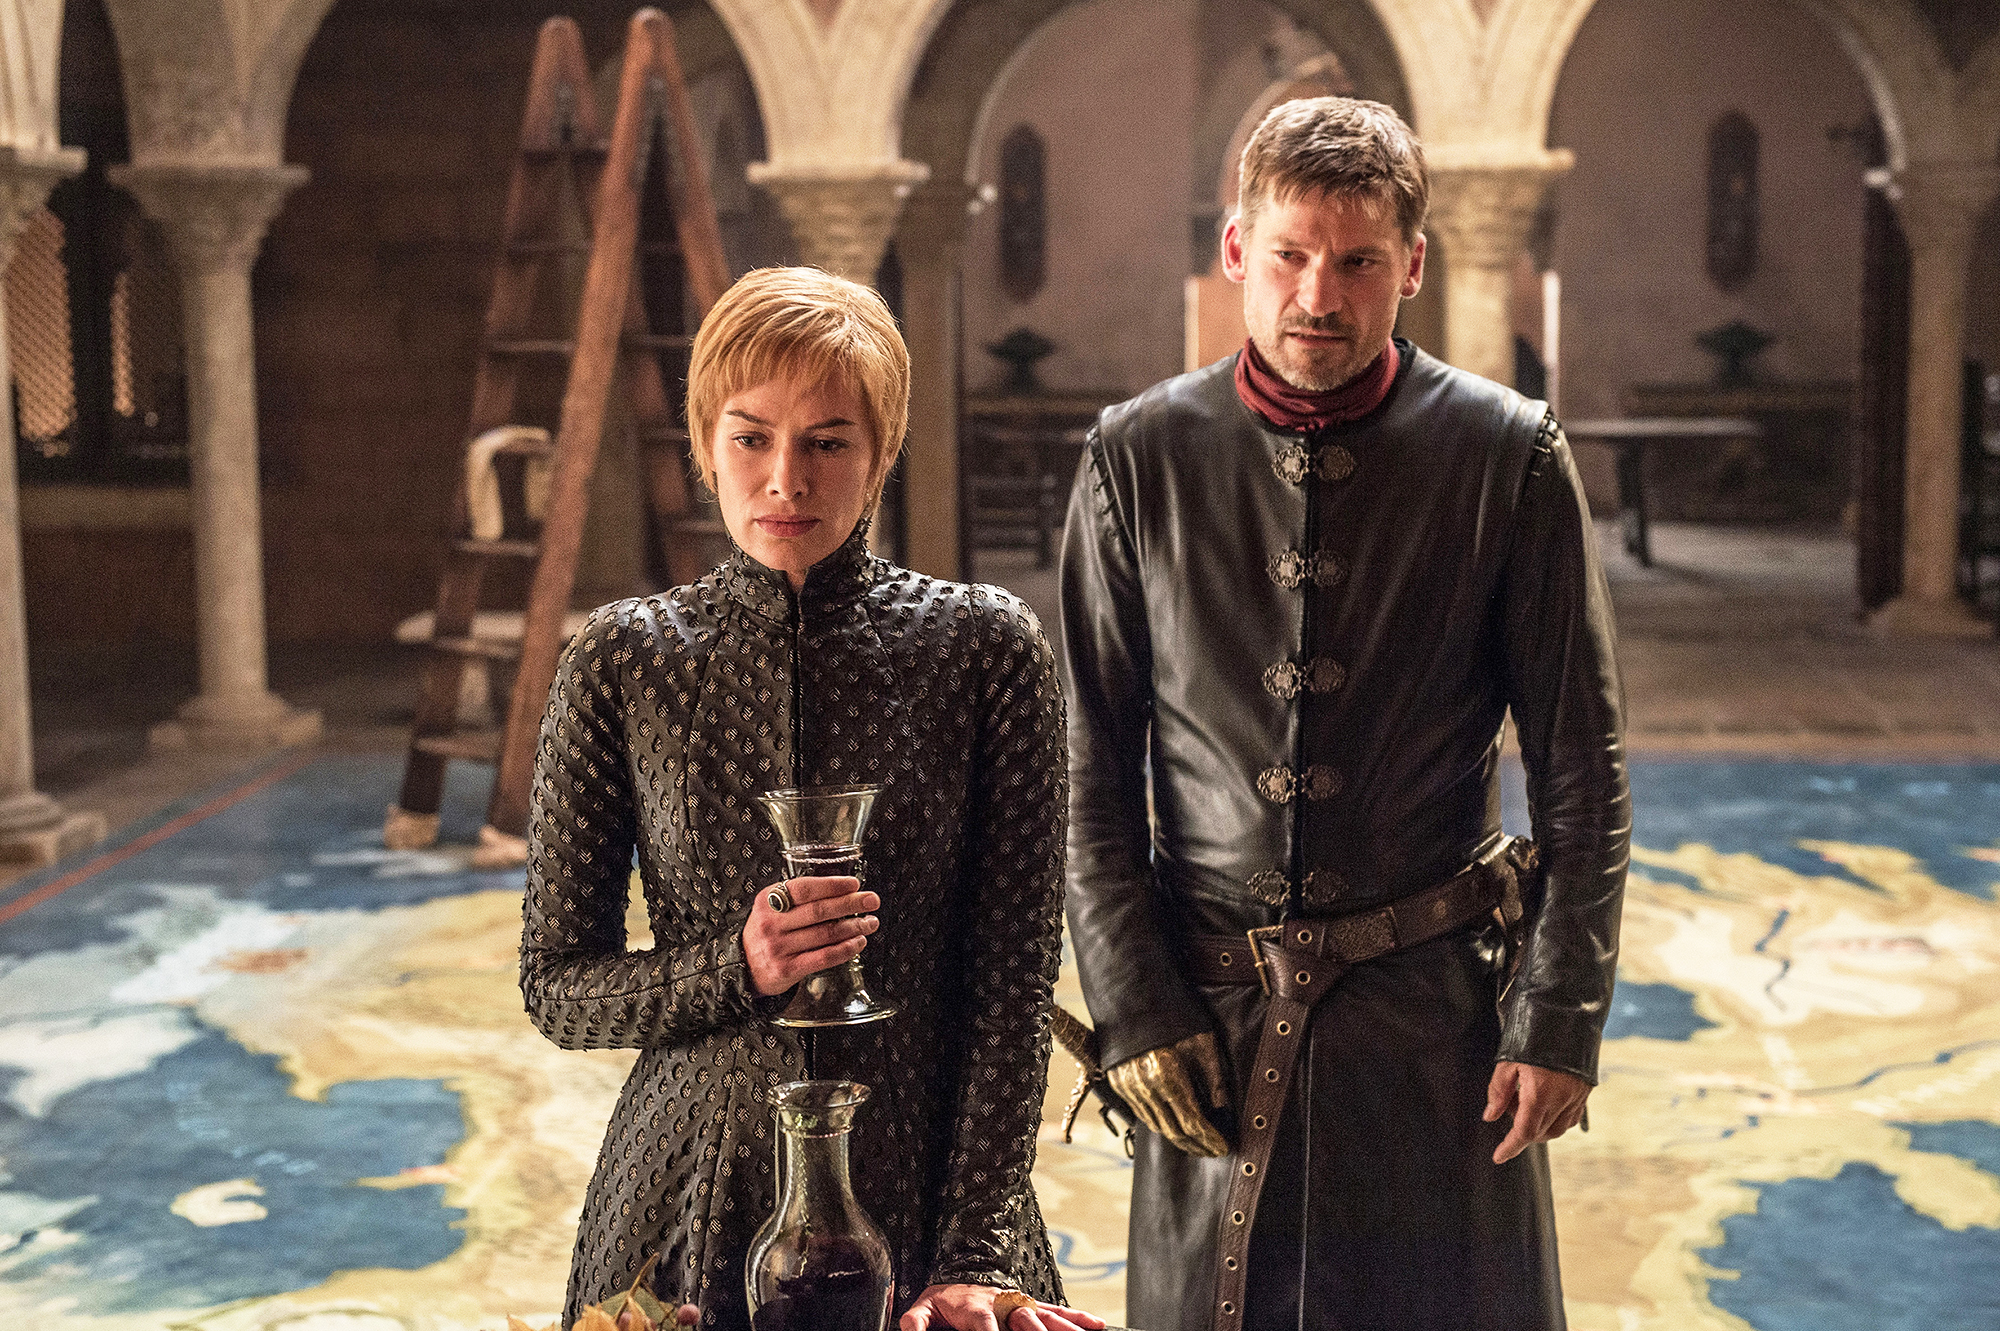 Lena Headey and Nikolaj Coster-Waldau in season 7 of 'Game of Thrones.'